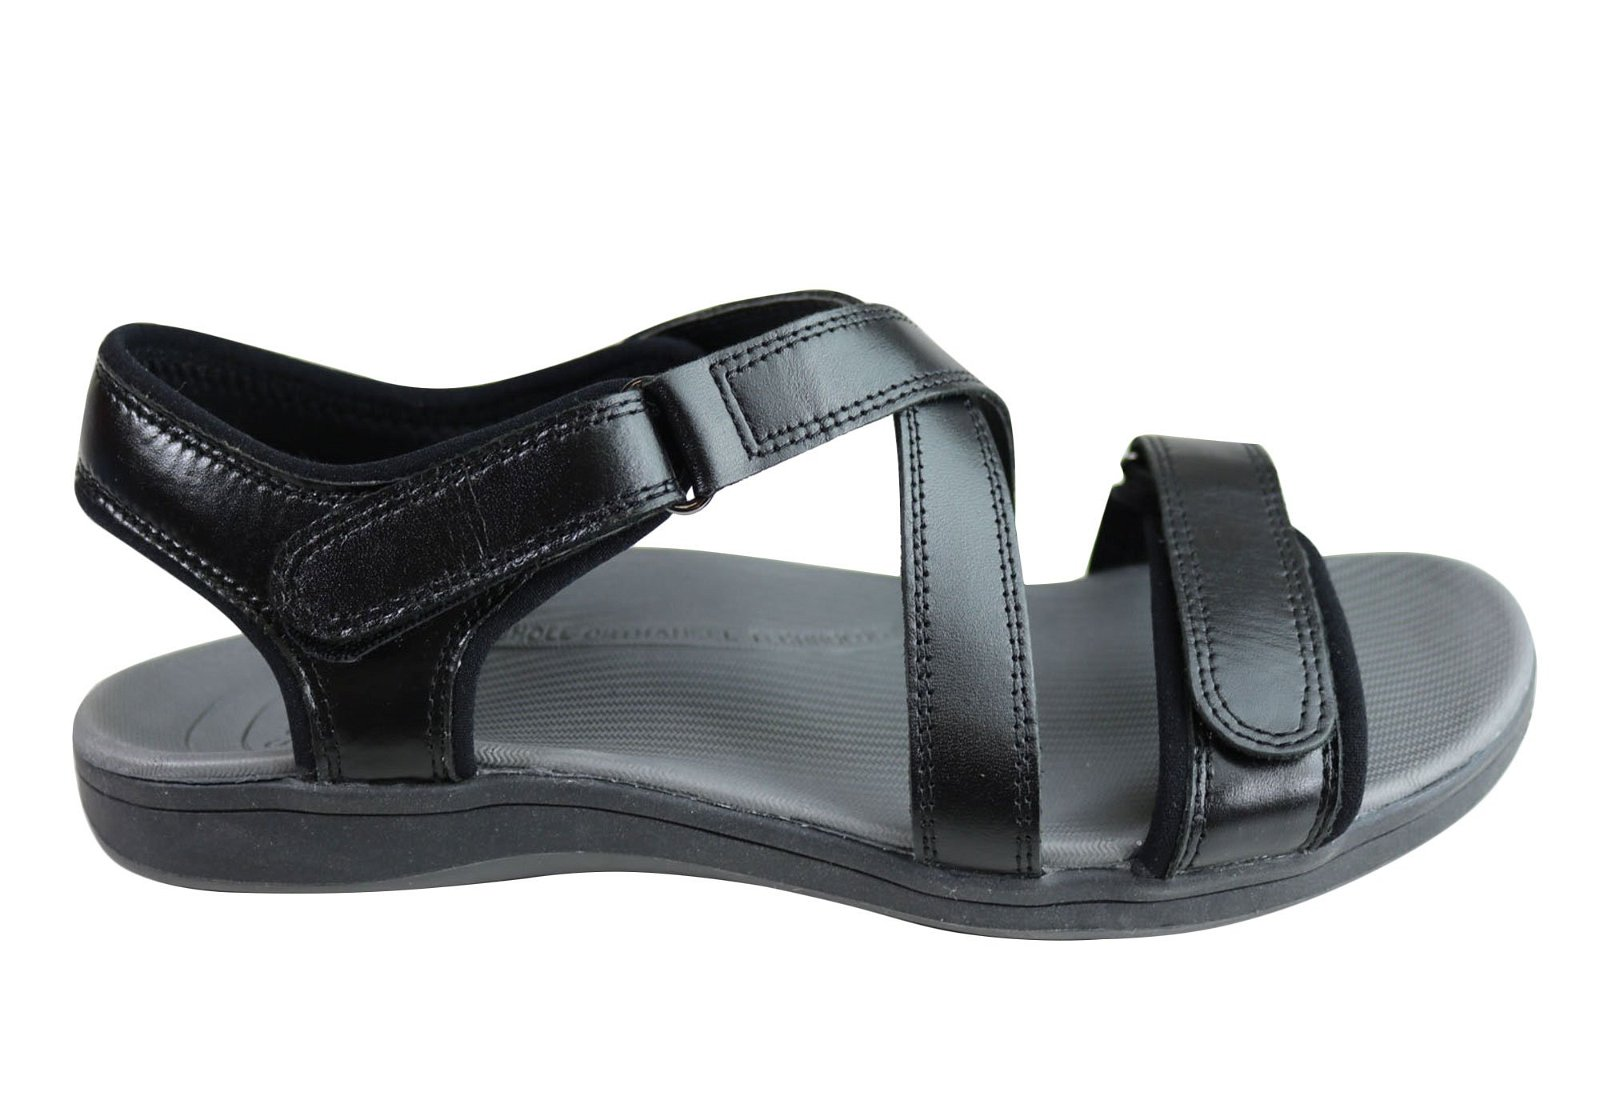 d2c14c469117 Image of Scholl Orthaheel Kayla Womens Comfort Supportive Adjustable Sandals